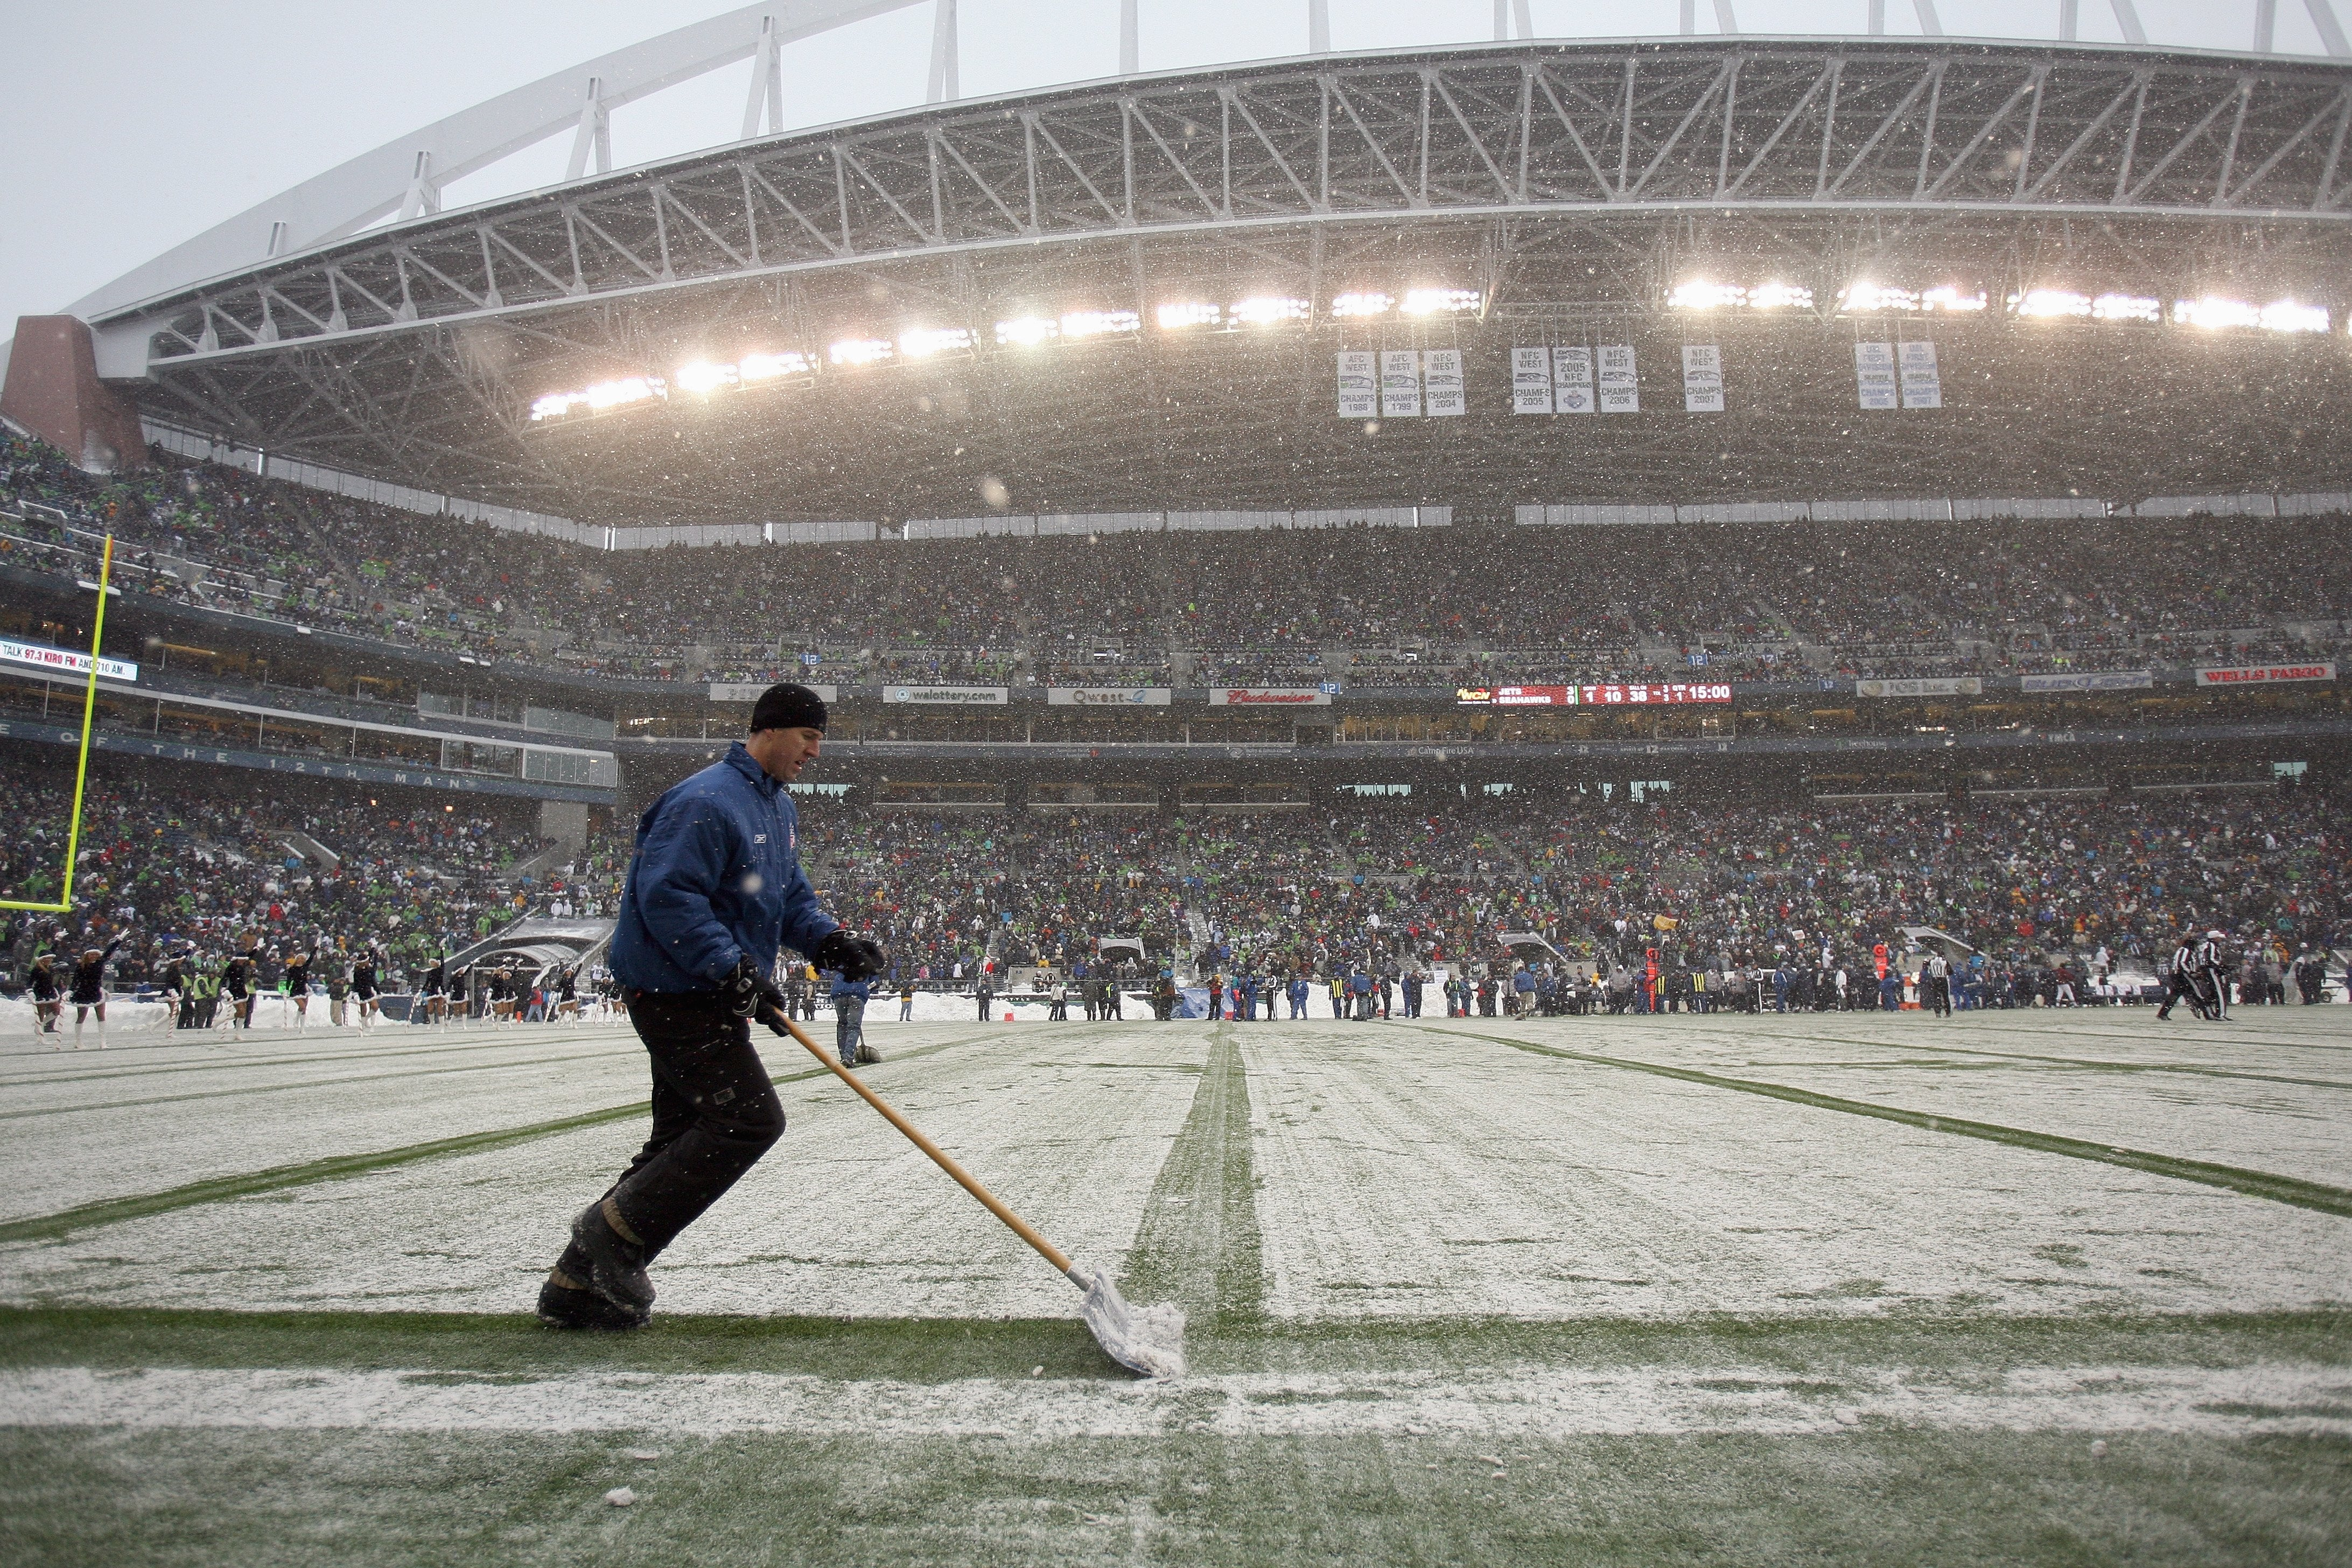 Super Bowl 2014: Farmers' Almanac Predicts Winter Storm for Northeast in Time for Game